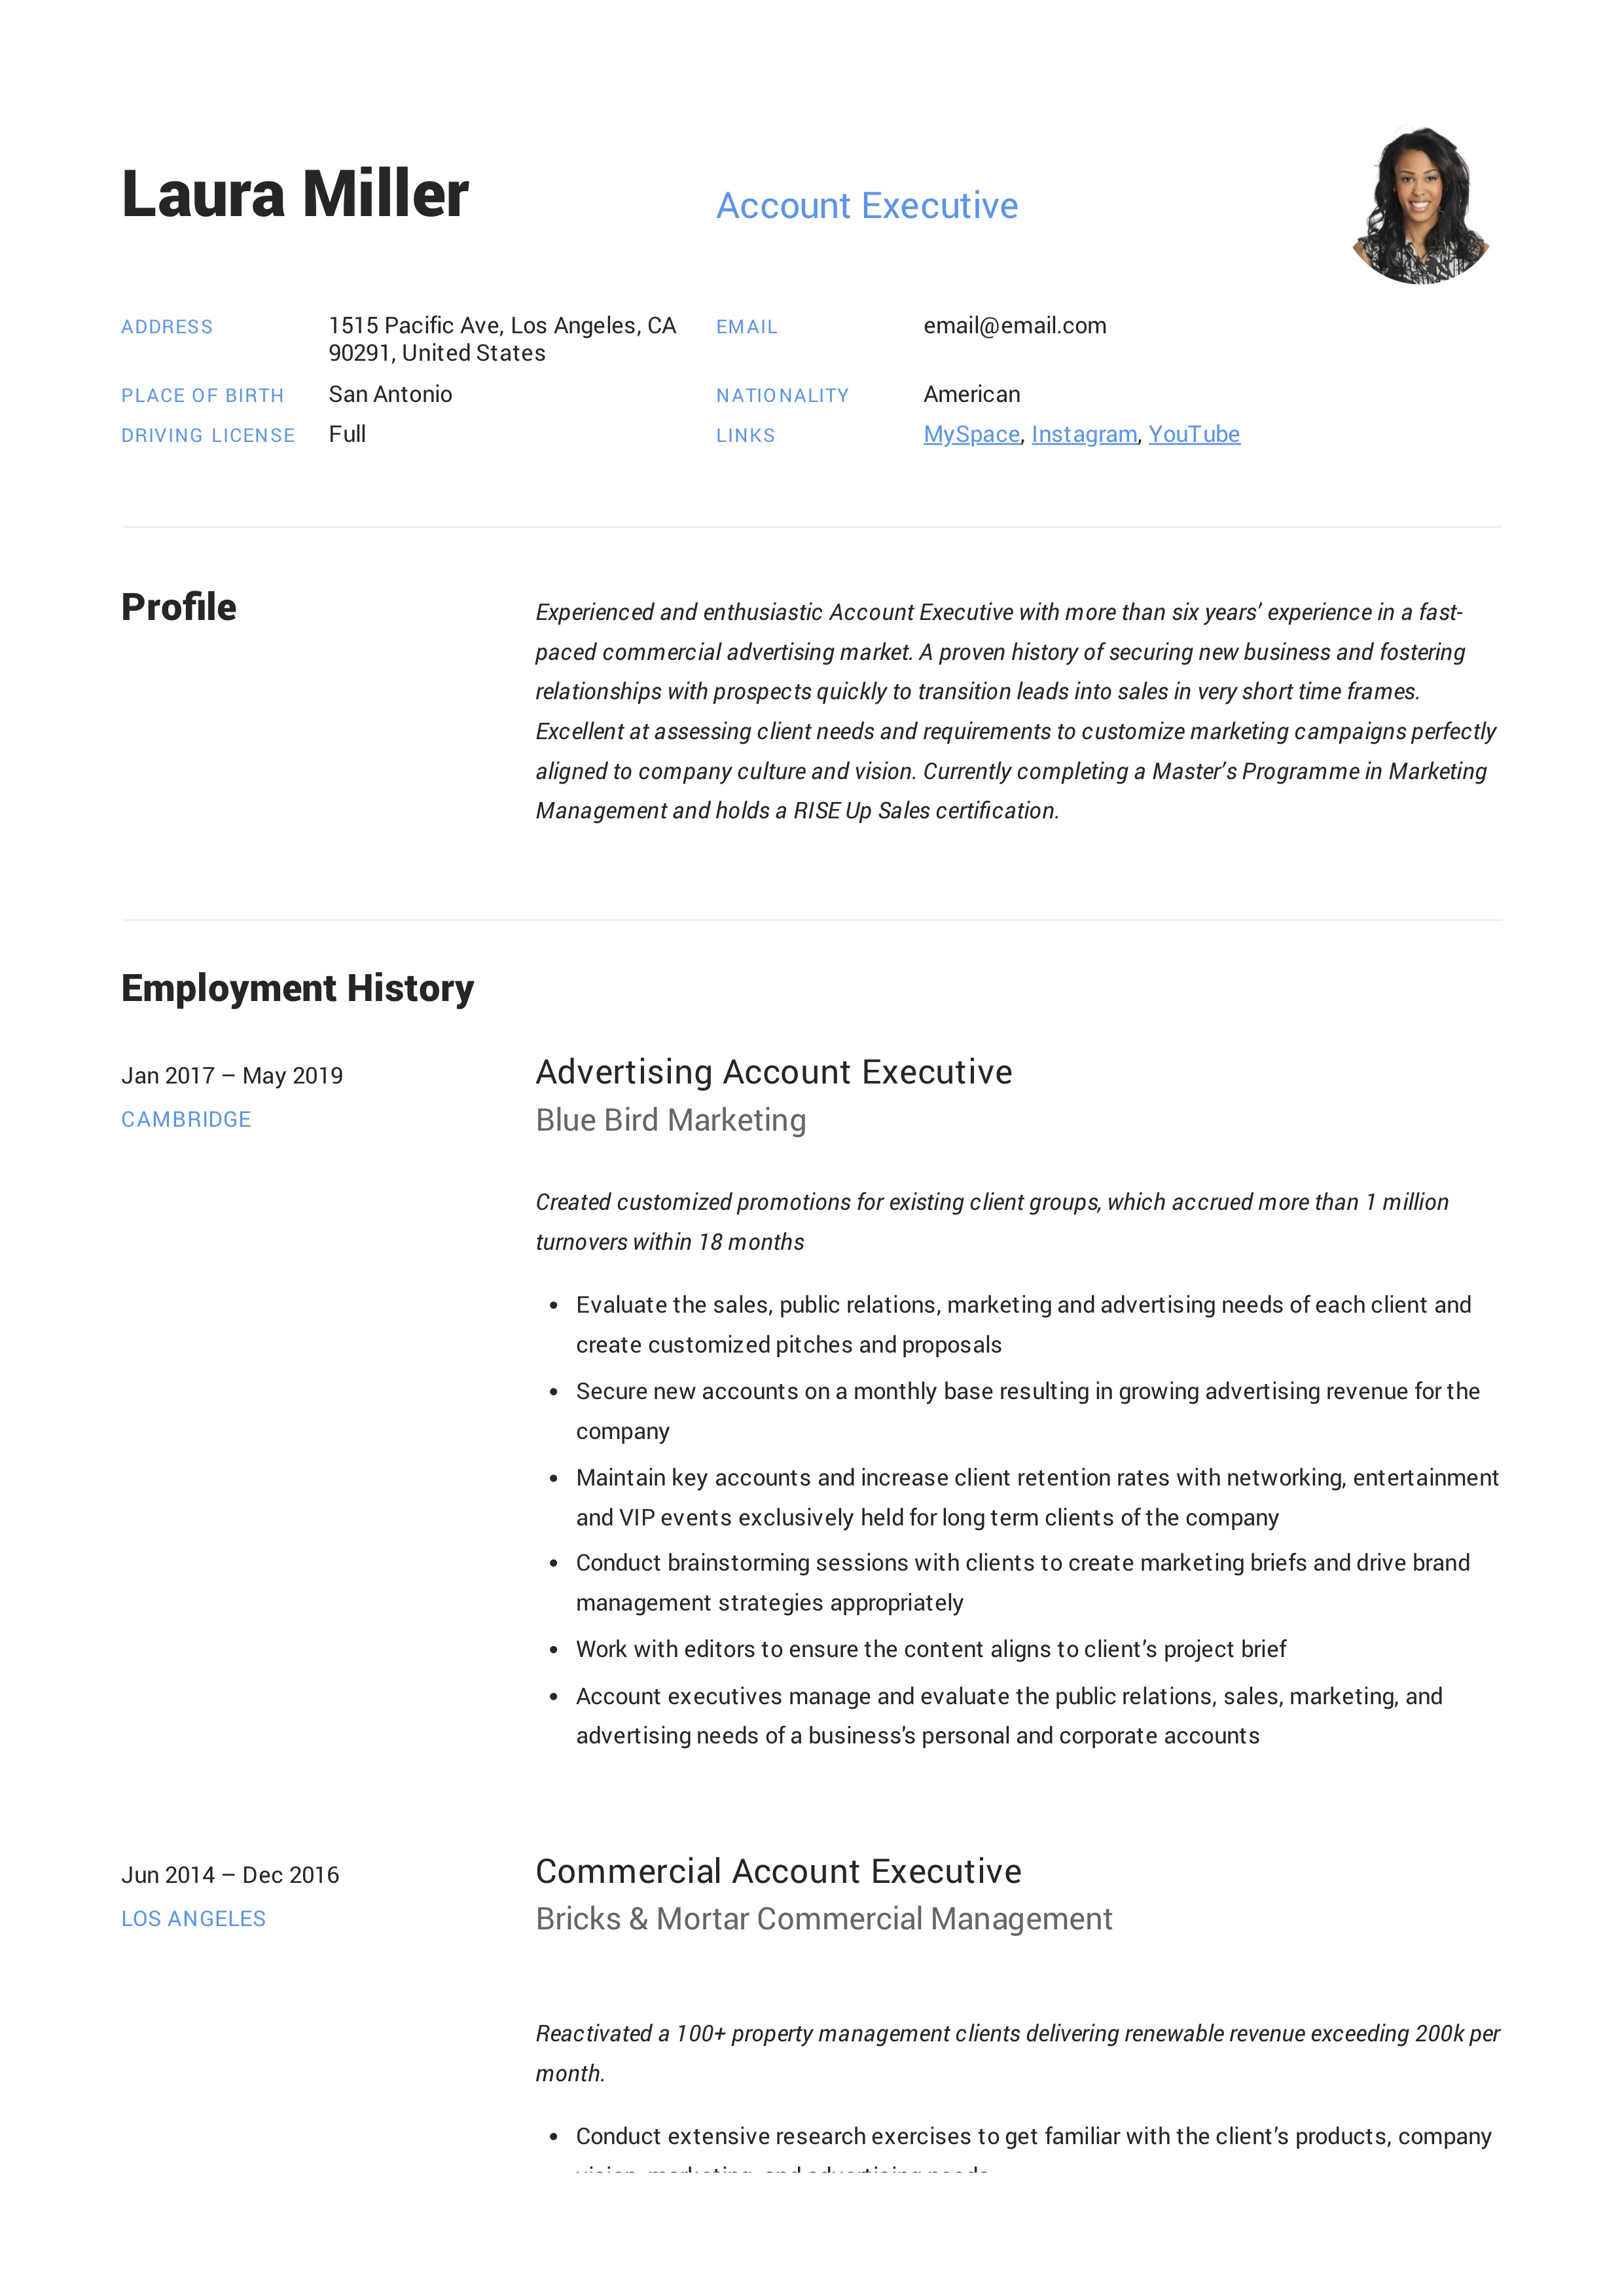 Account Executive Resume Writing Guide 12 Templates Pdf 20